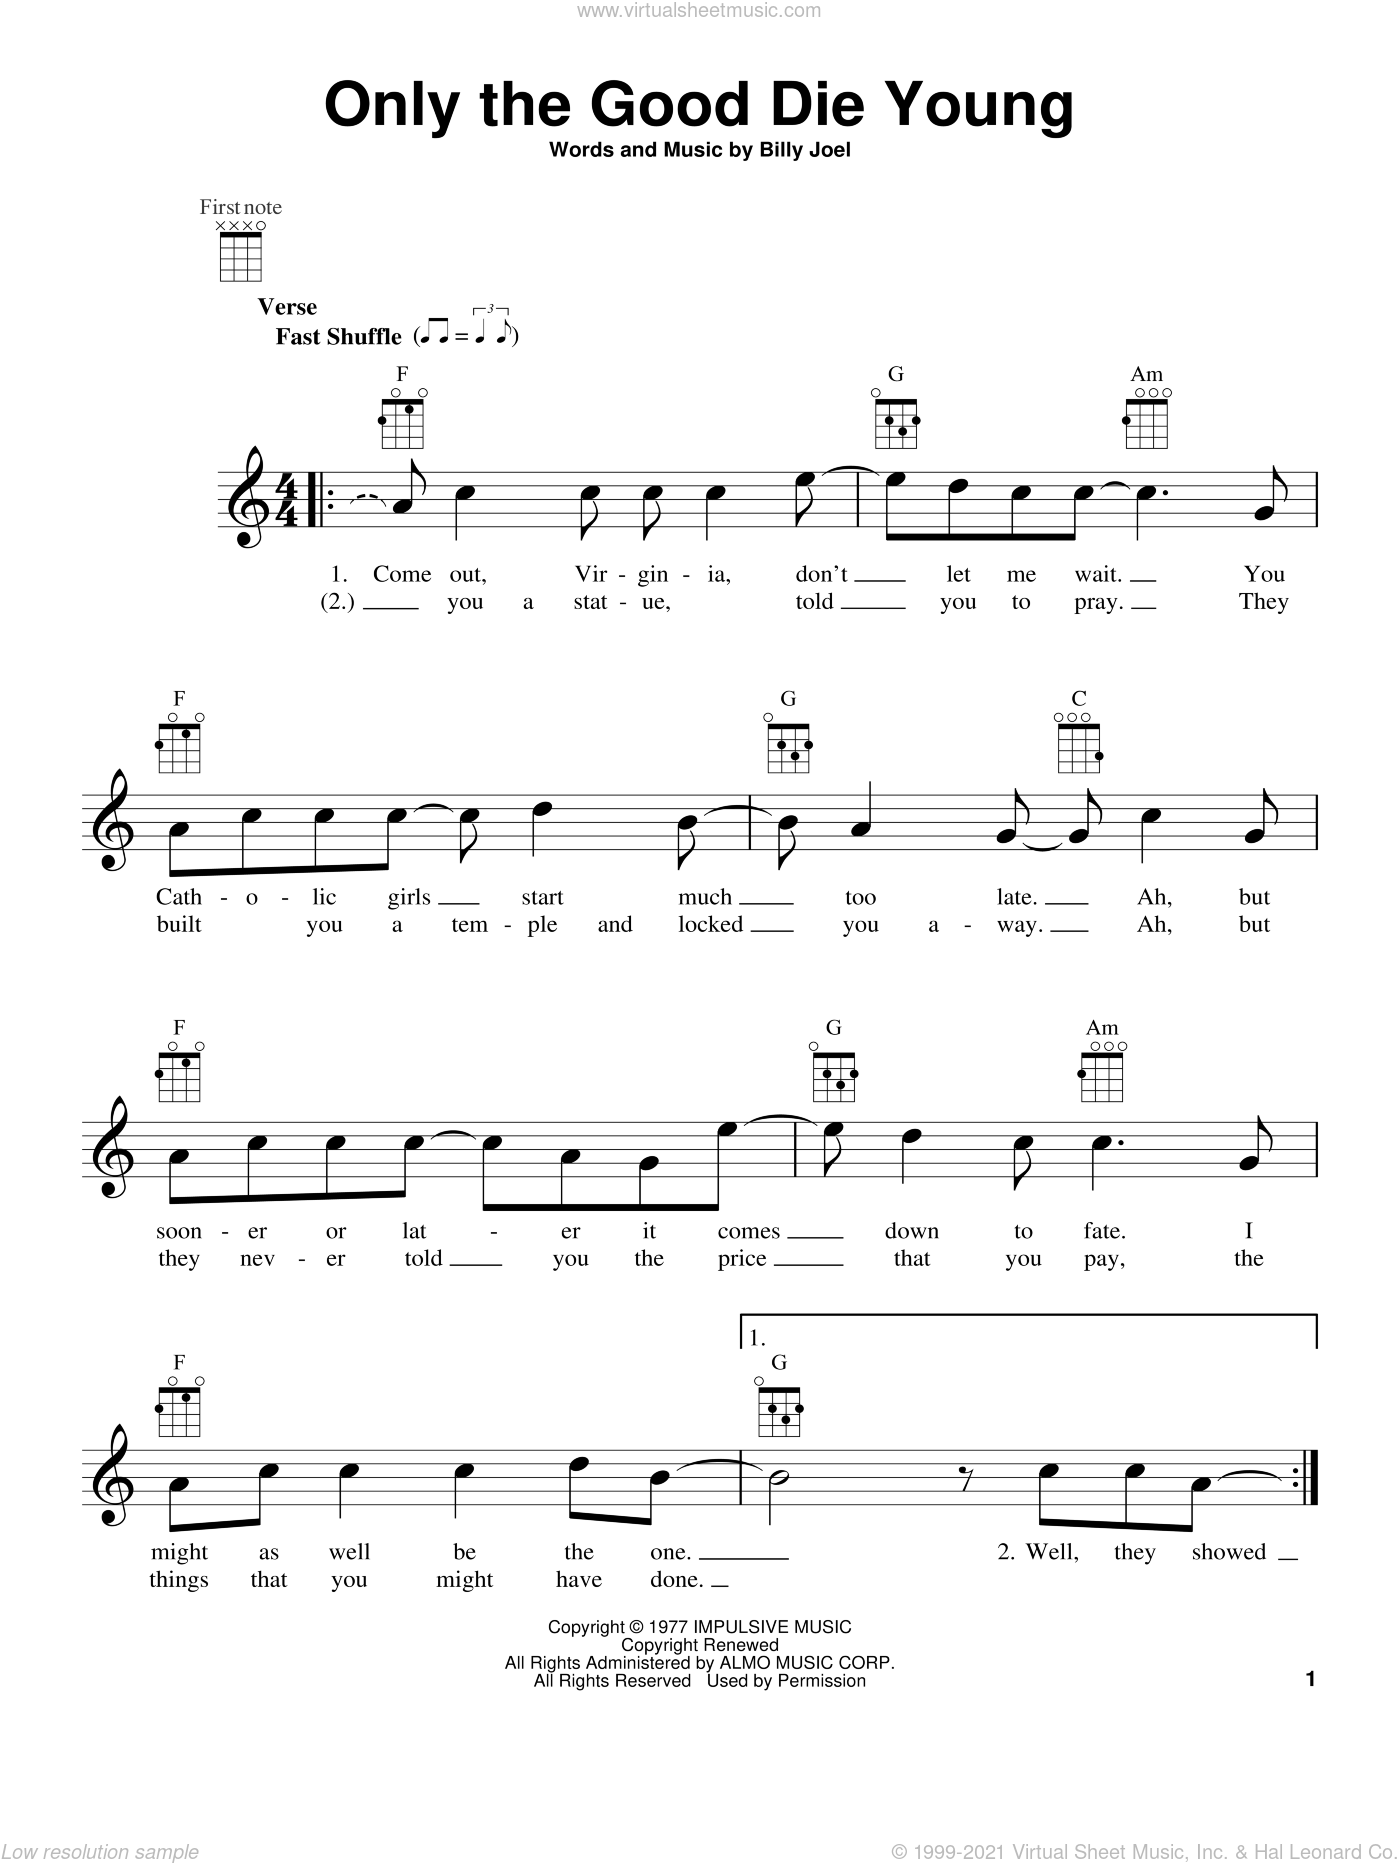 Only The Good Die Young sheet music for ukulele by Billy Joel, intermediate skill level